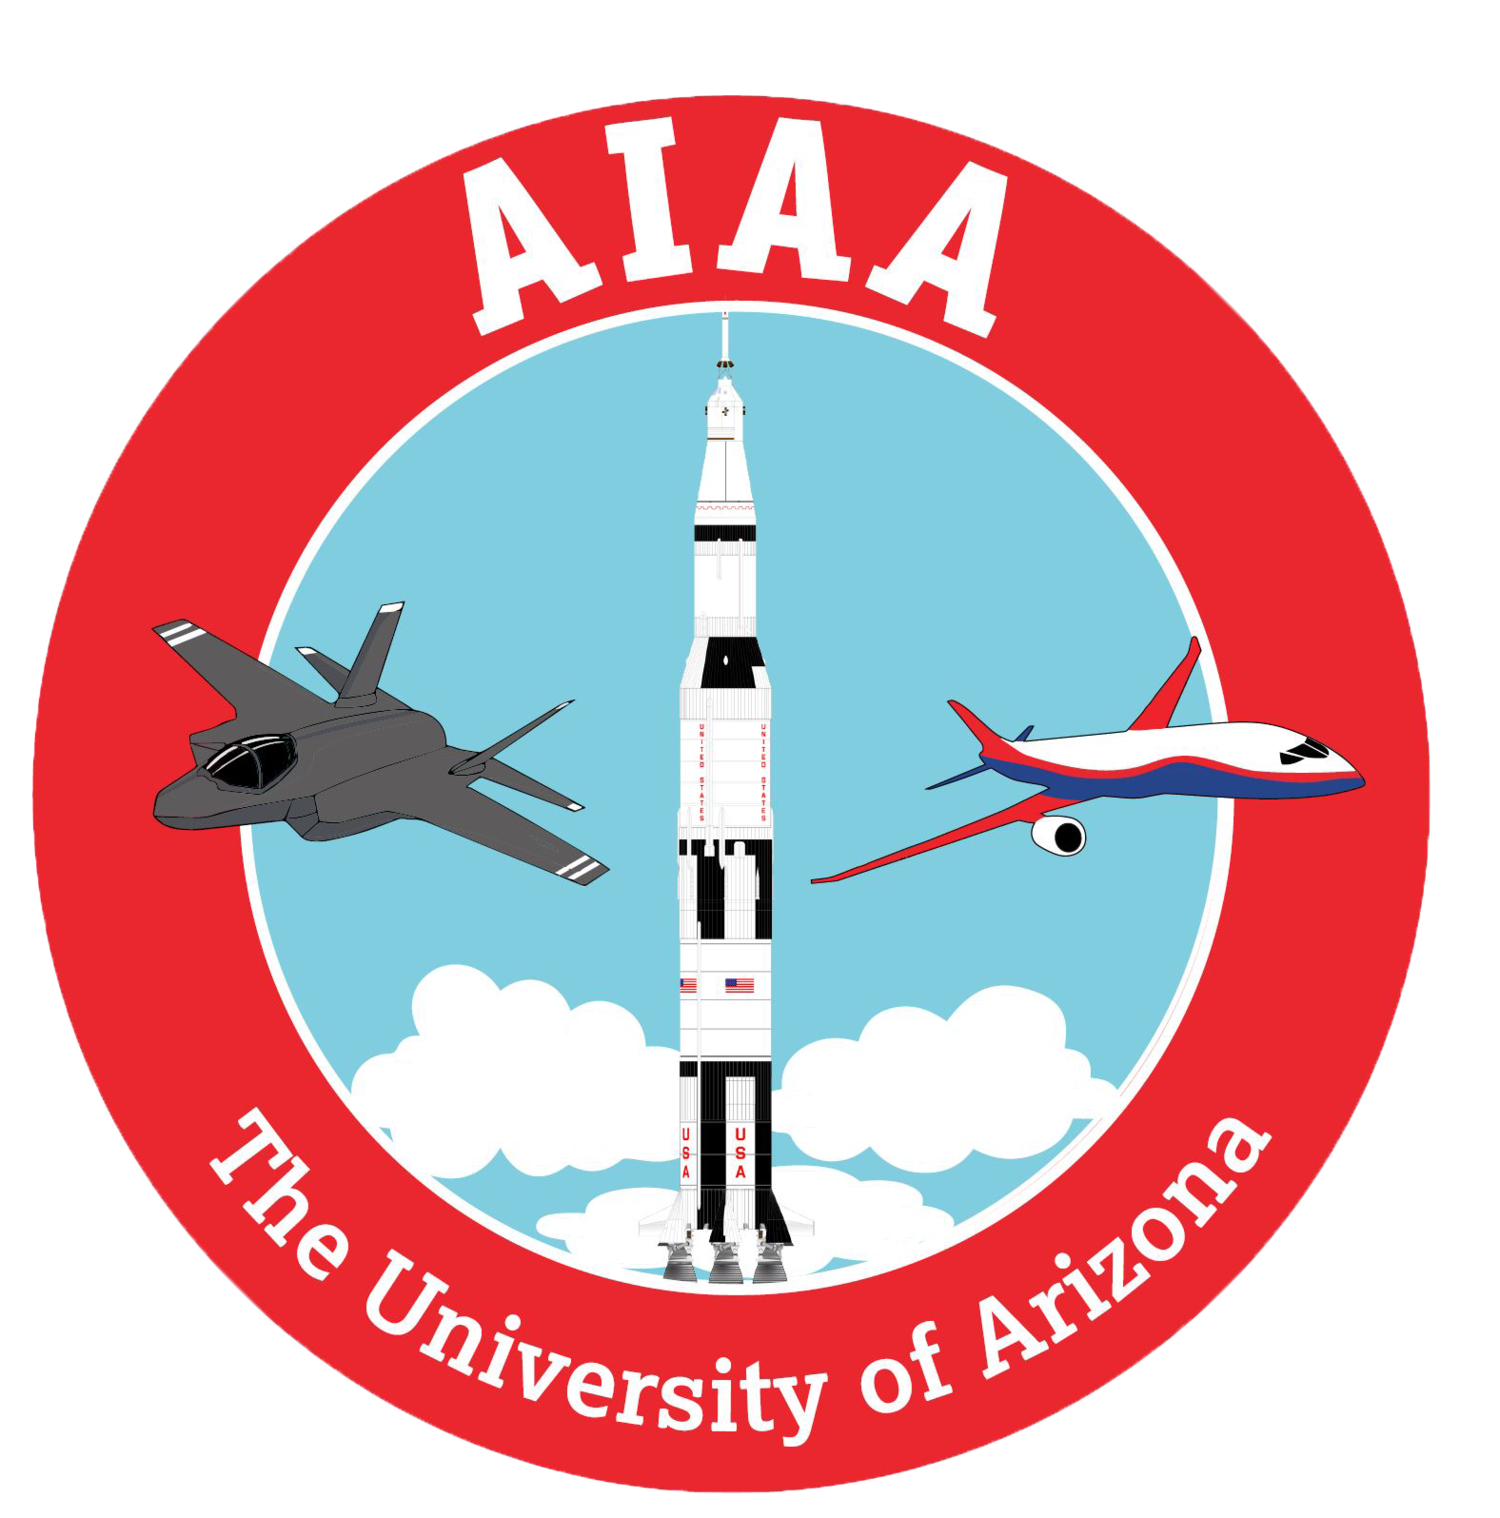 University of Arizona AIAA